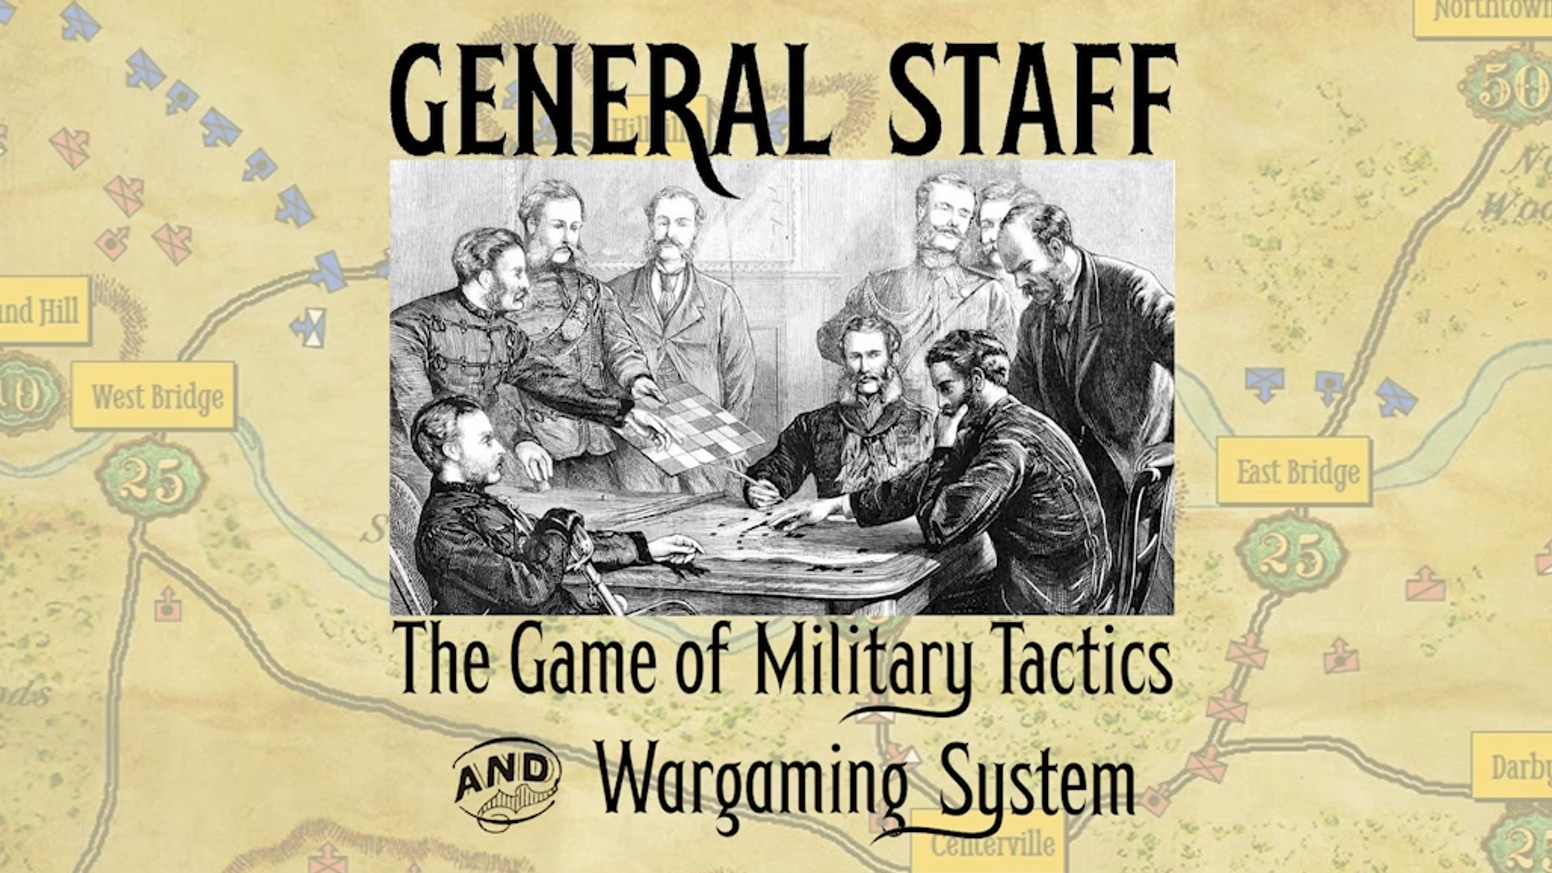 Create your own armies, maps and battles. Play historical simulations and 'what if' scenarios. Two game modes: Simulation & Kriegsspiel